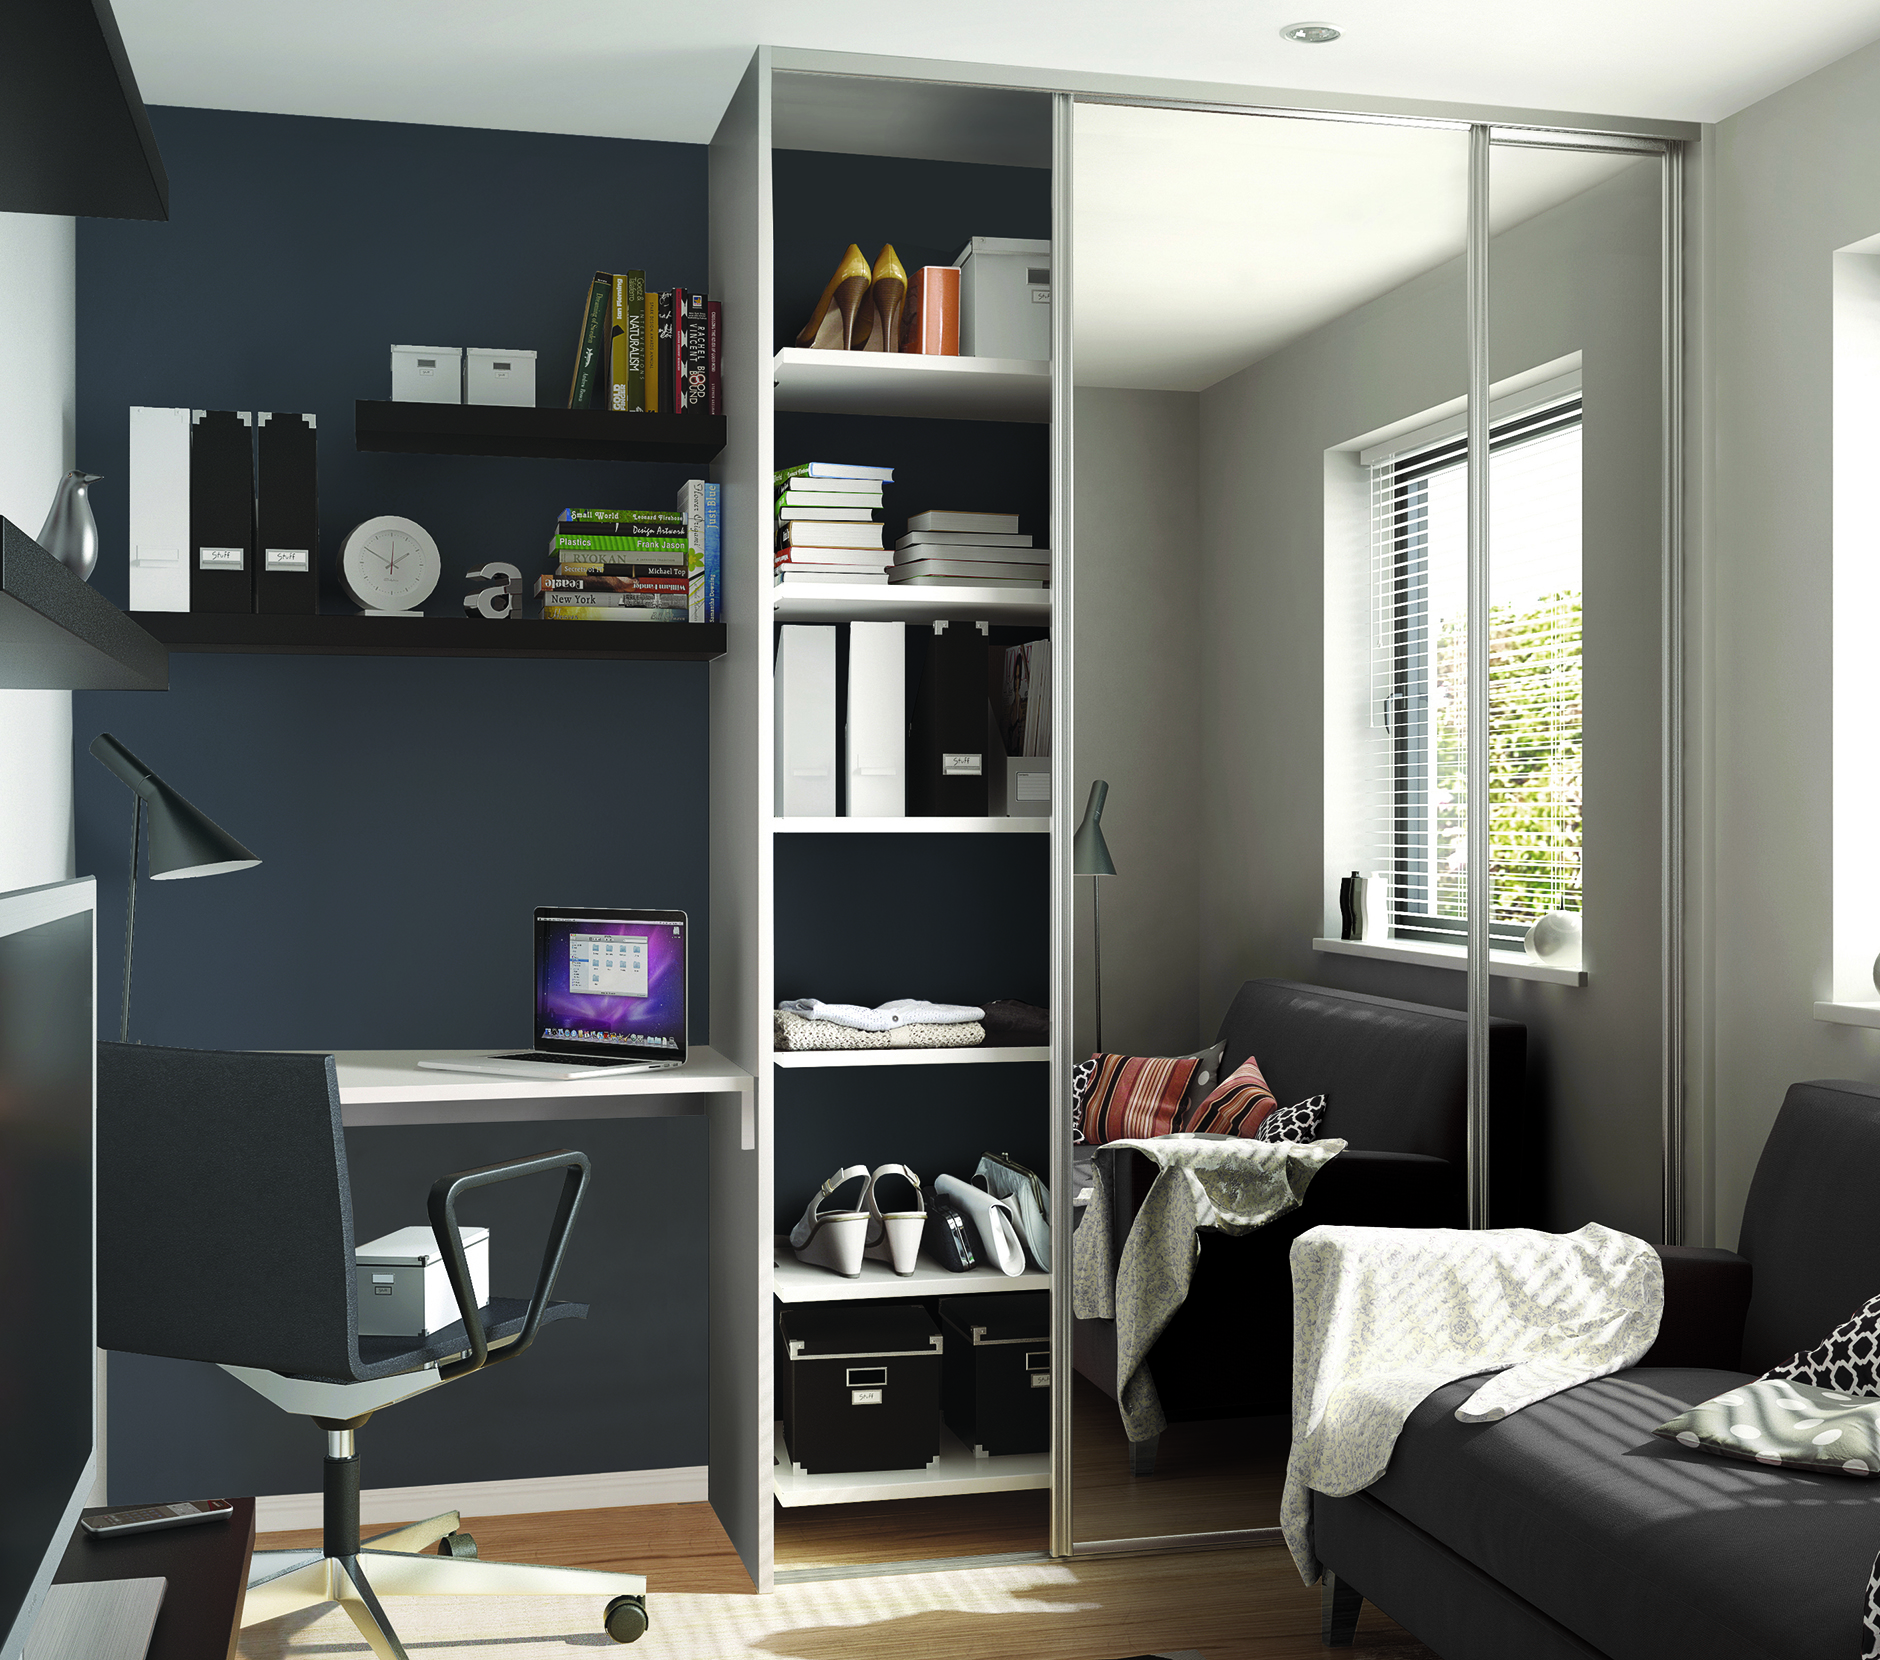 Wardrobe and desk combination